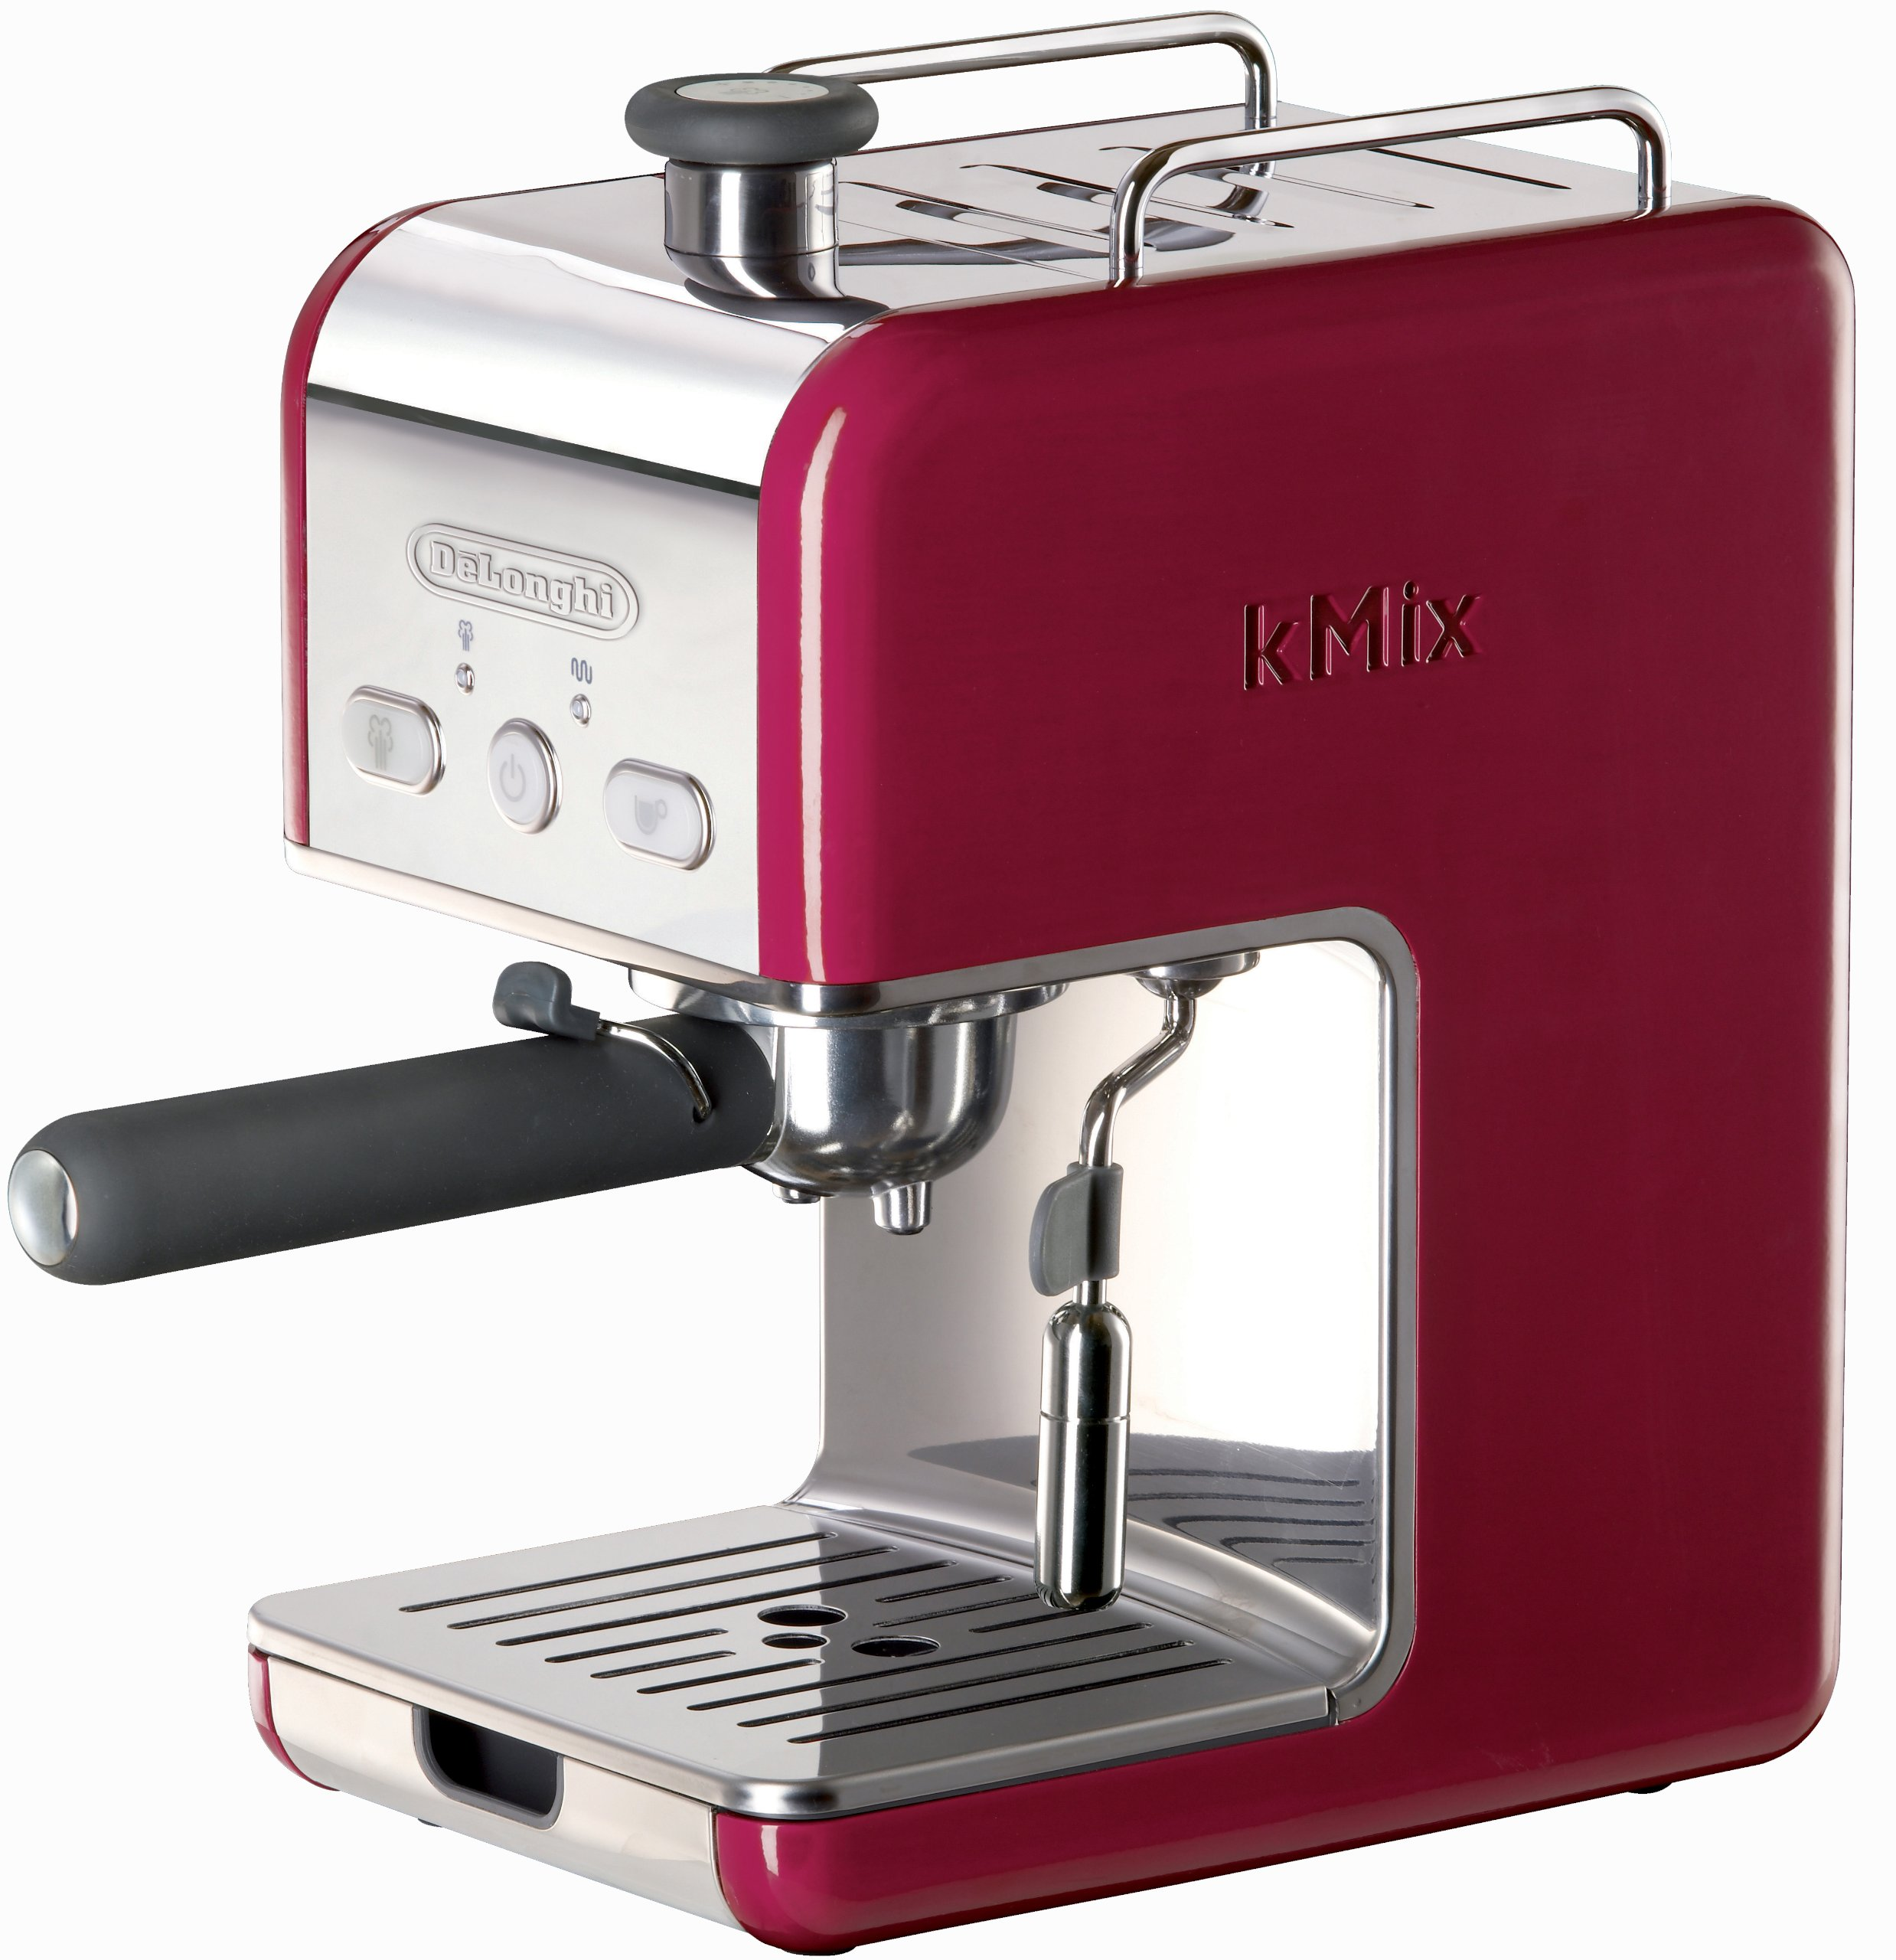 Cheap Good Espresso Maker Find Deals On Line At Rok Presso Manual Classic Get Quotations Delonghi Kmix 15 Bars Pump Green